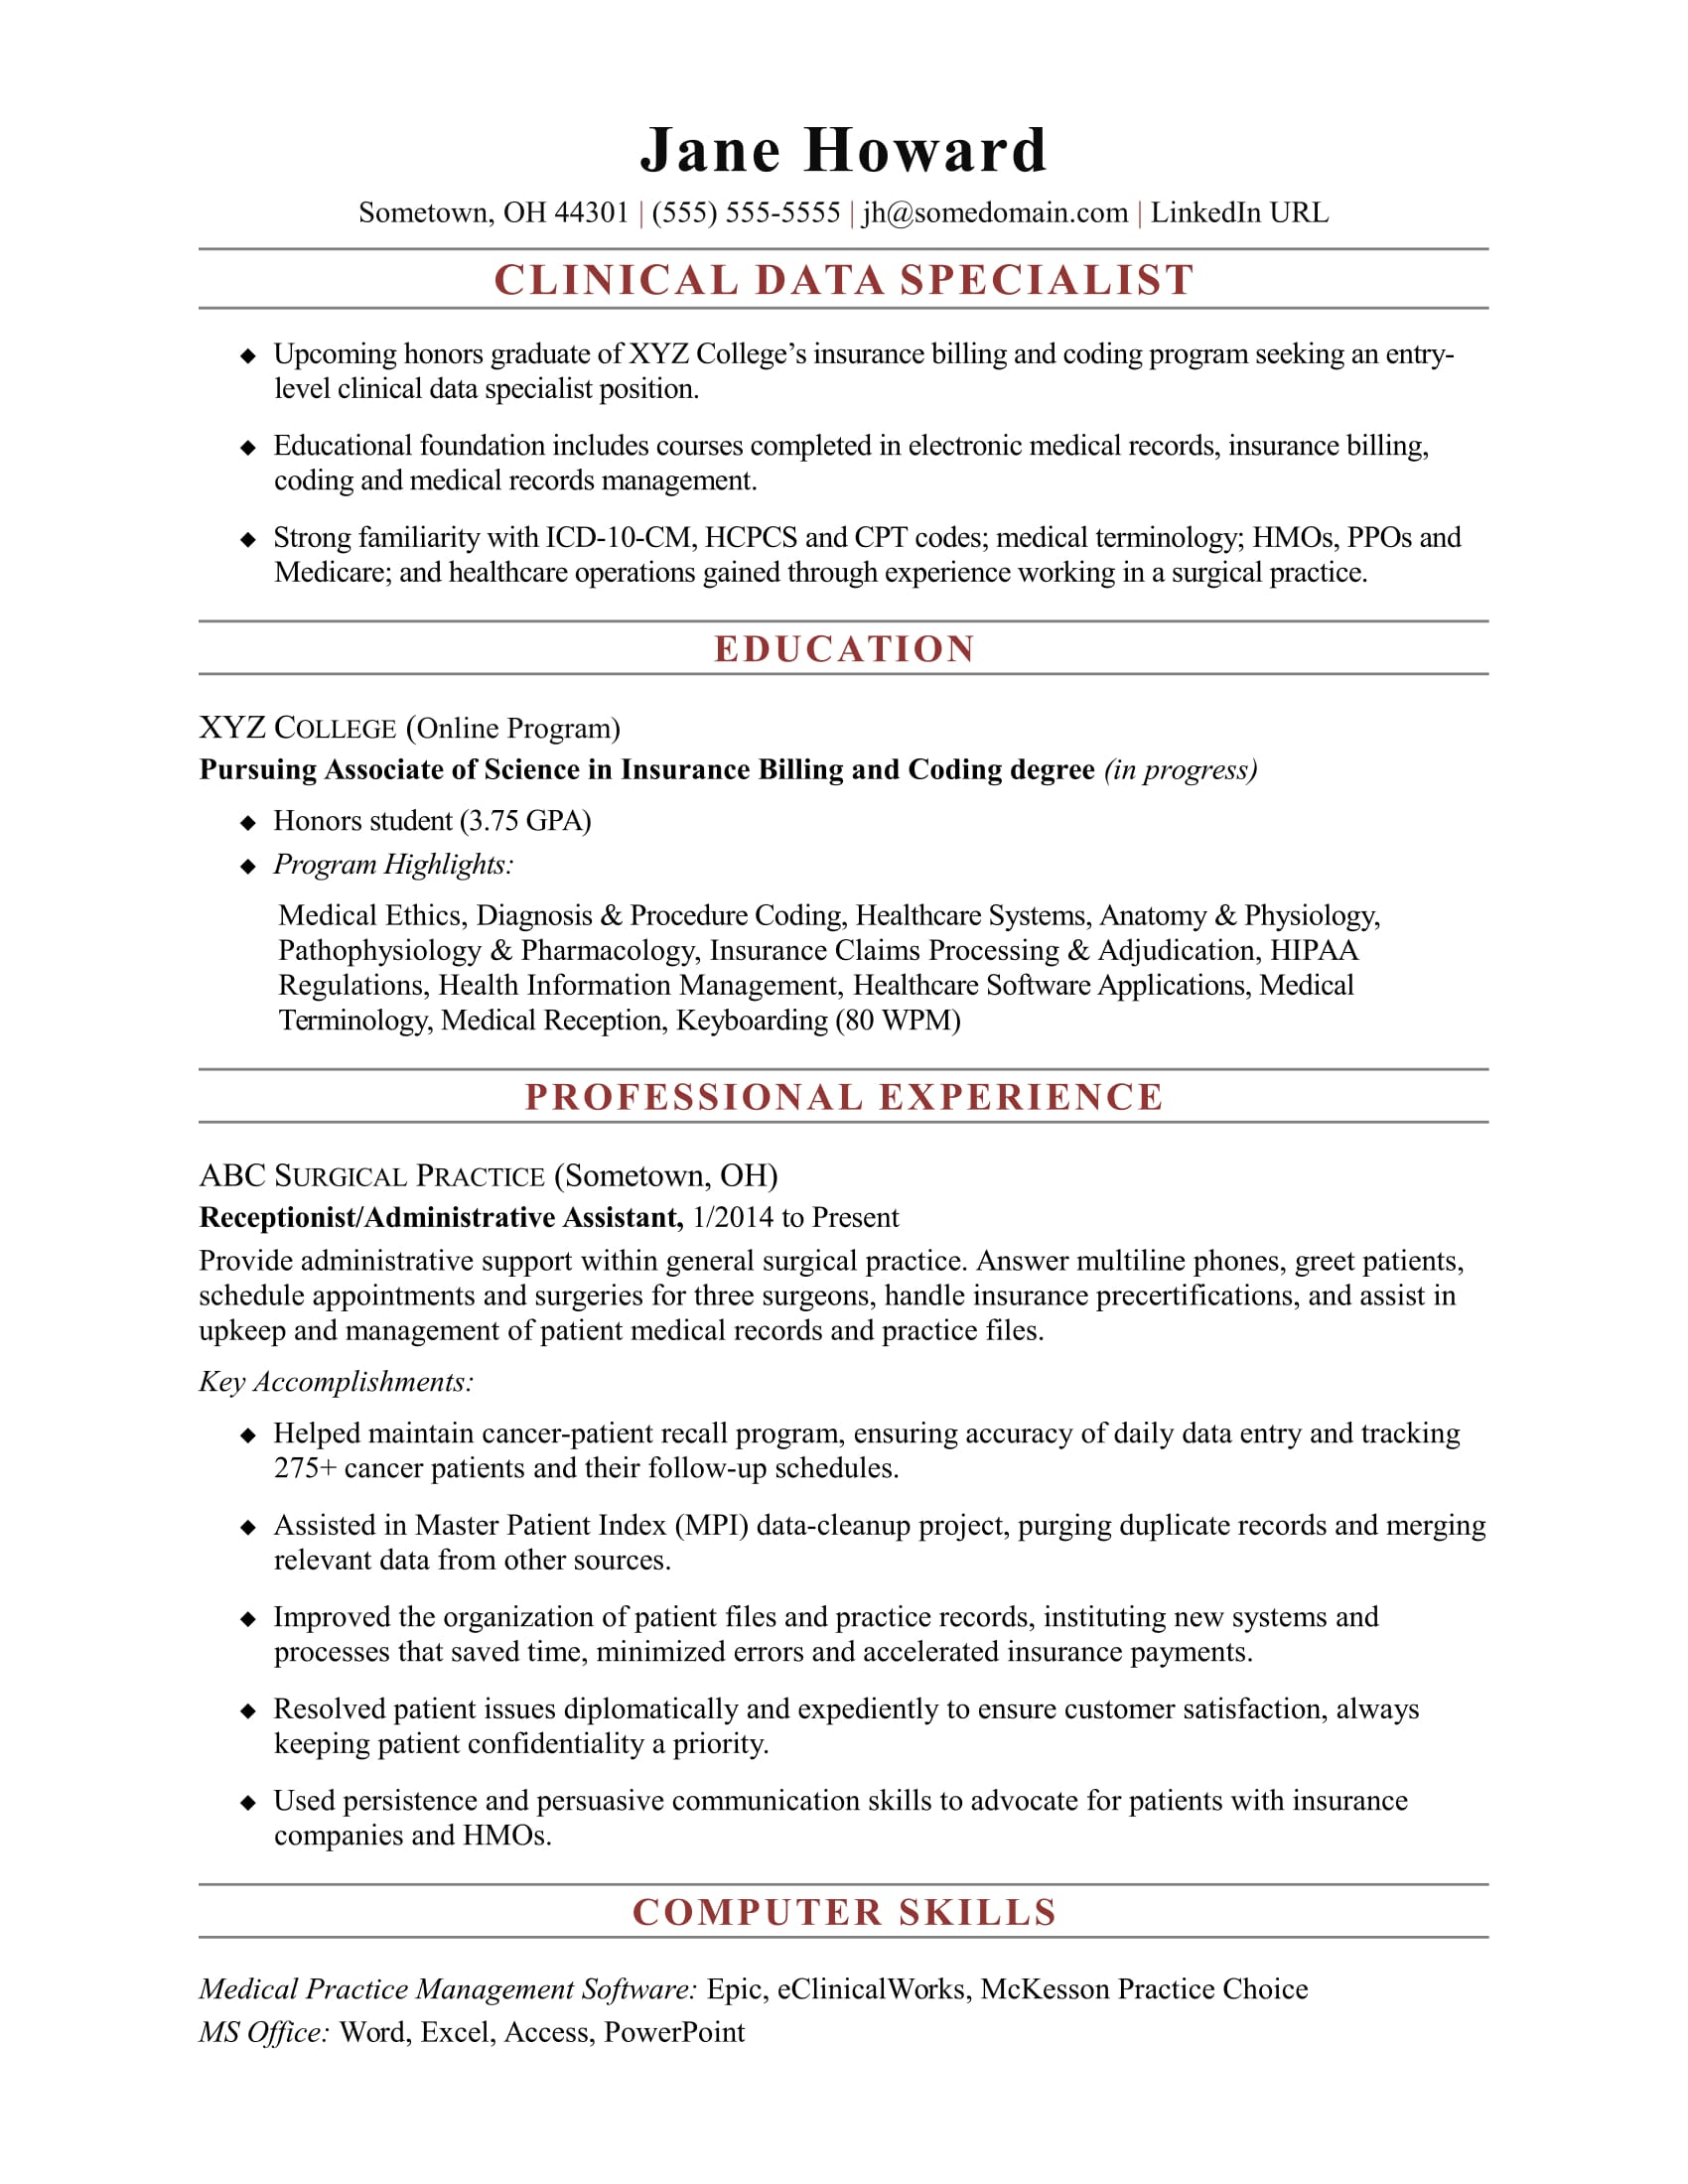 Sample Resume For An Entry Level Clinical Data Specialist  How To Organize A Resume